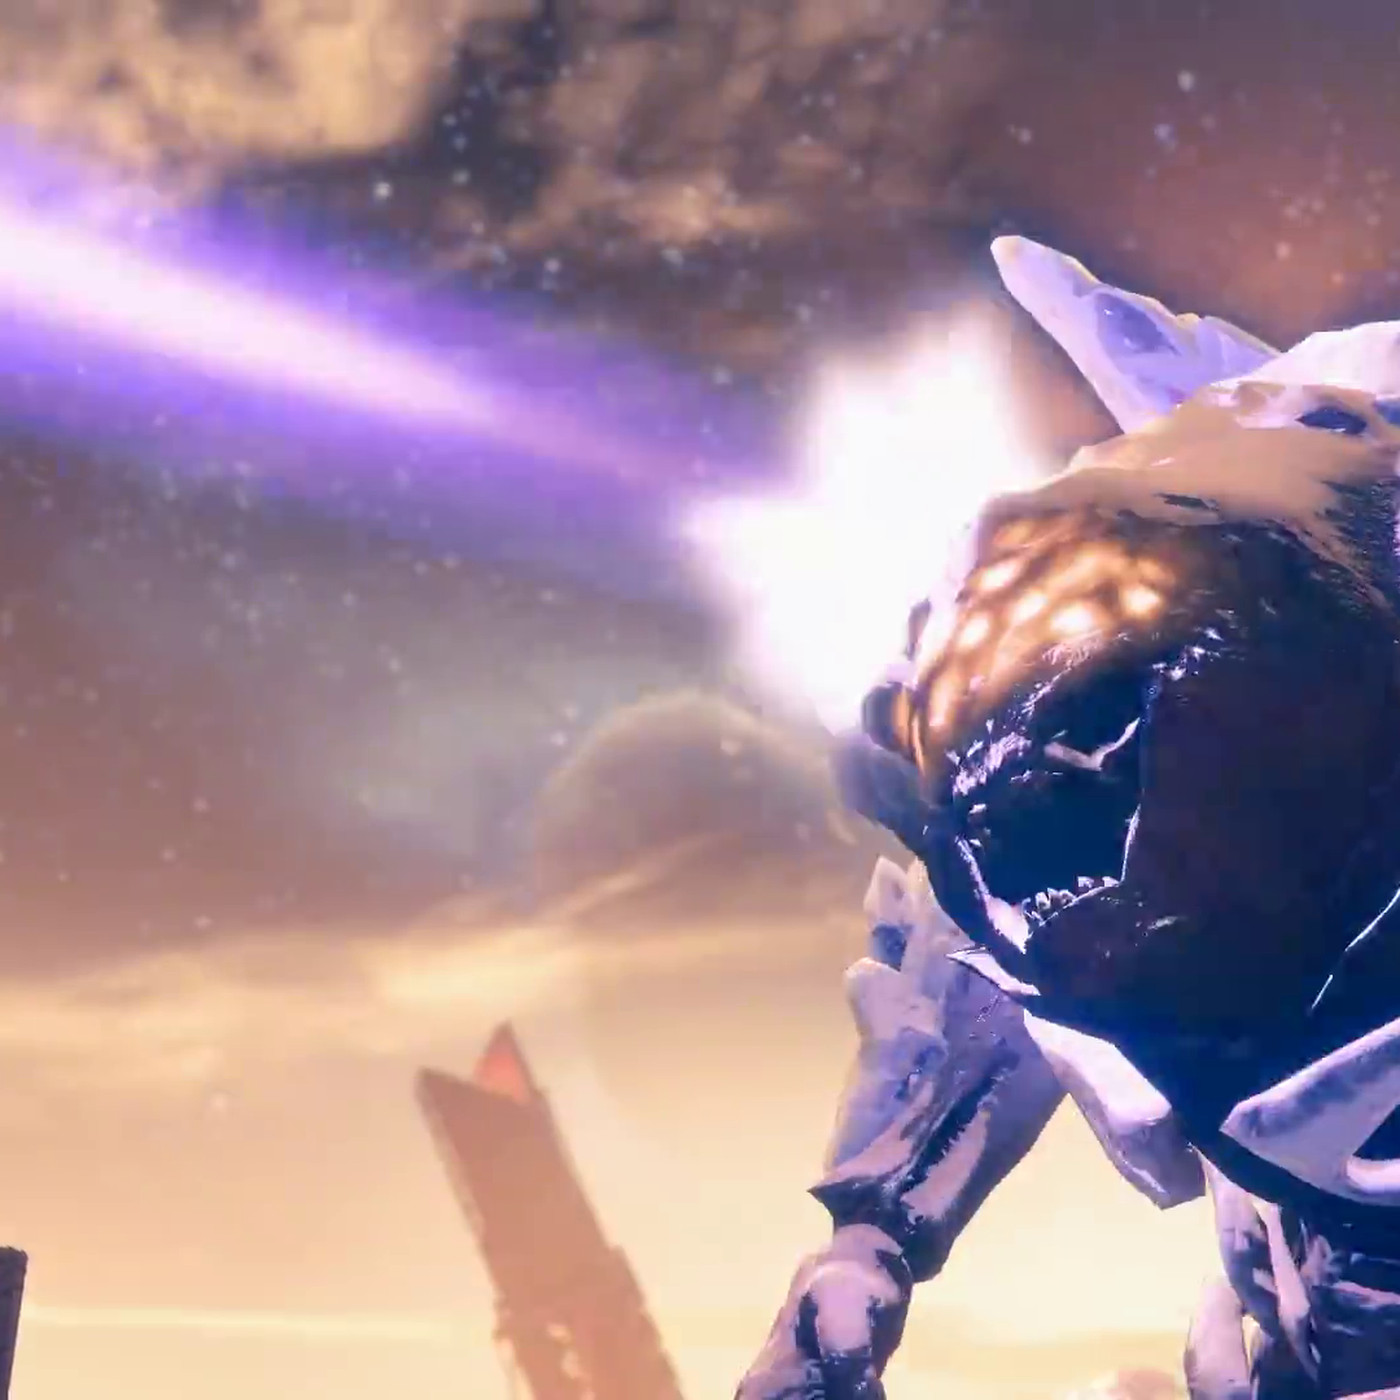 Destiny 2 players find new secret quest that leads to a hidden